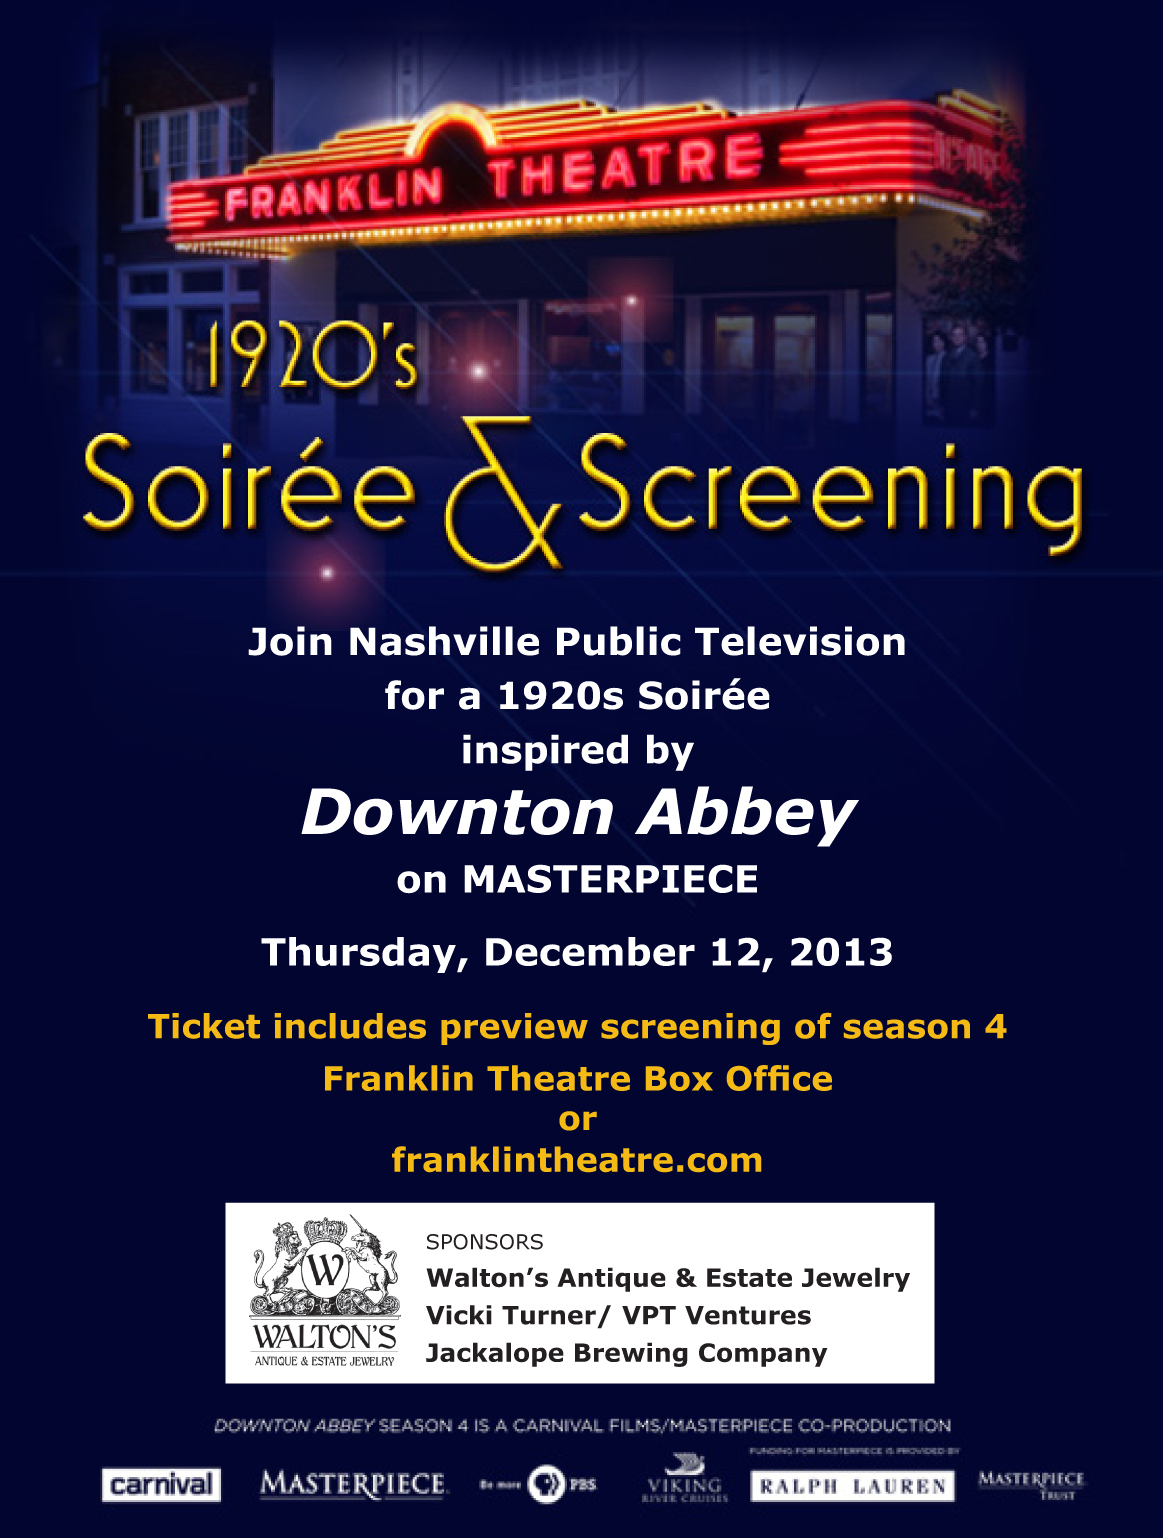 downton abbey flyer.jpg